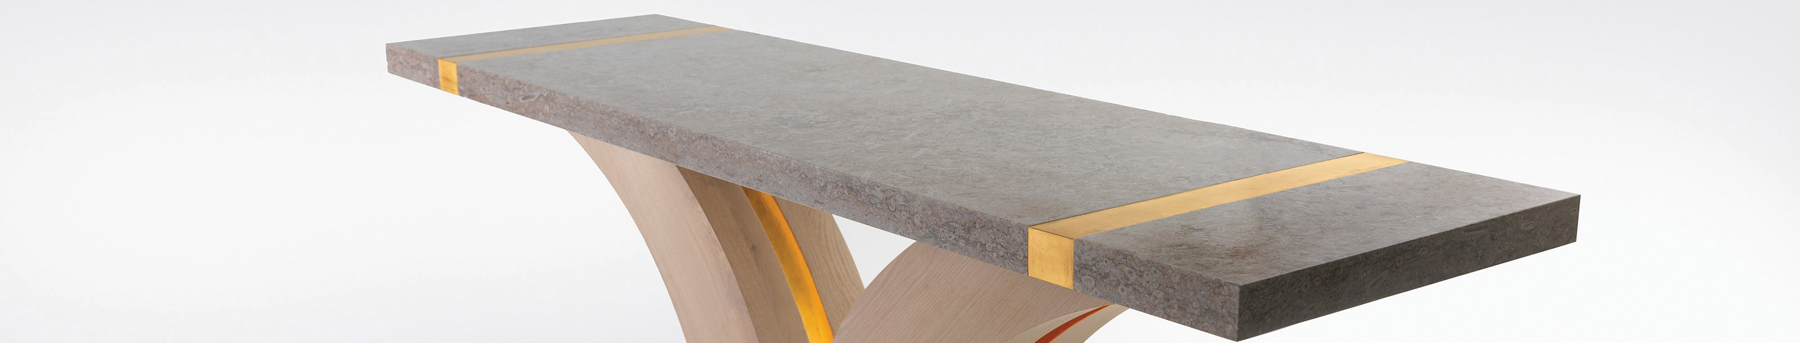 Bespoke table from Rupert McBain and Britannicus Stone